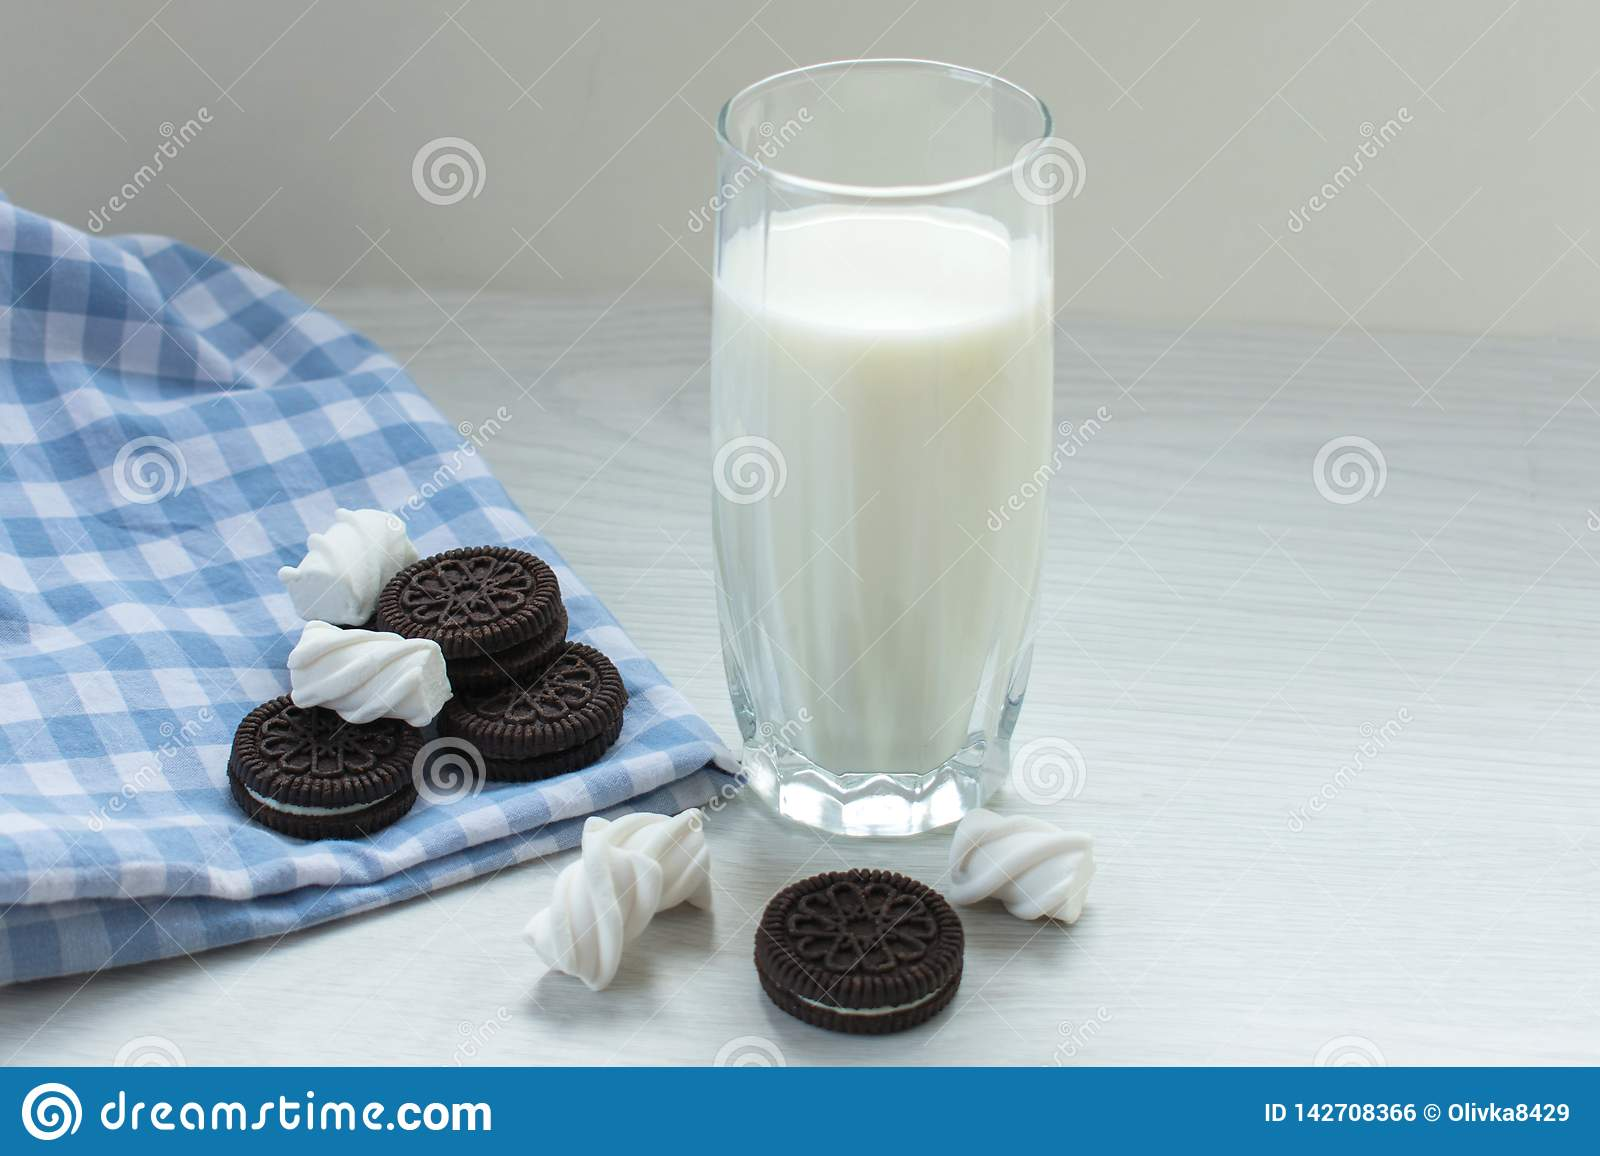 A glass of milk with chocolate chip cookies and a march of melow on a white table